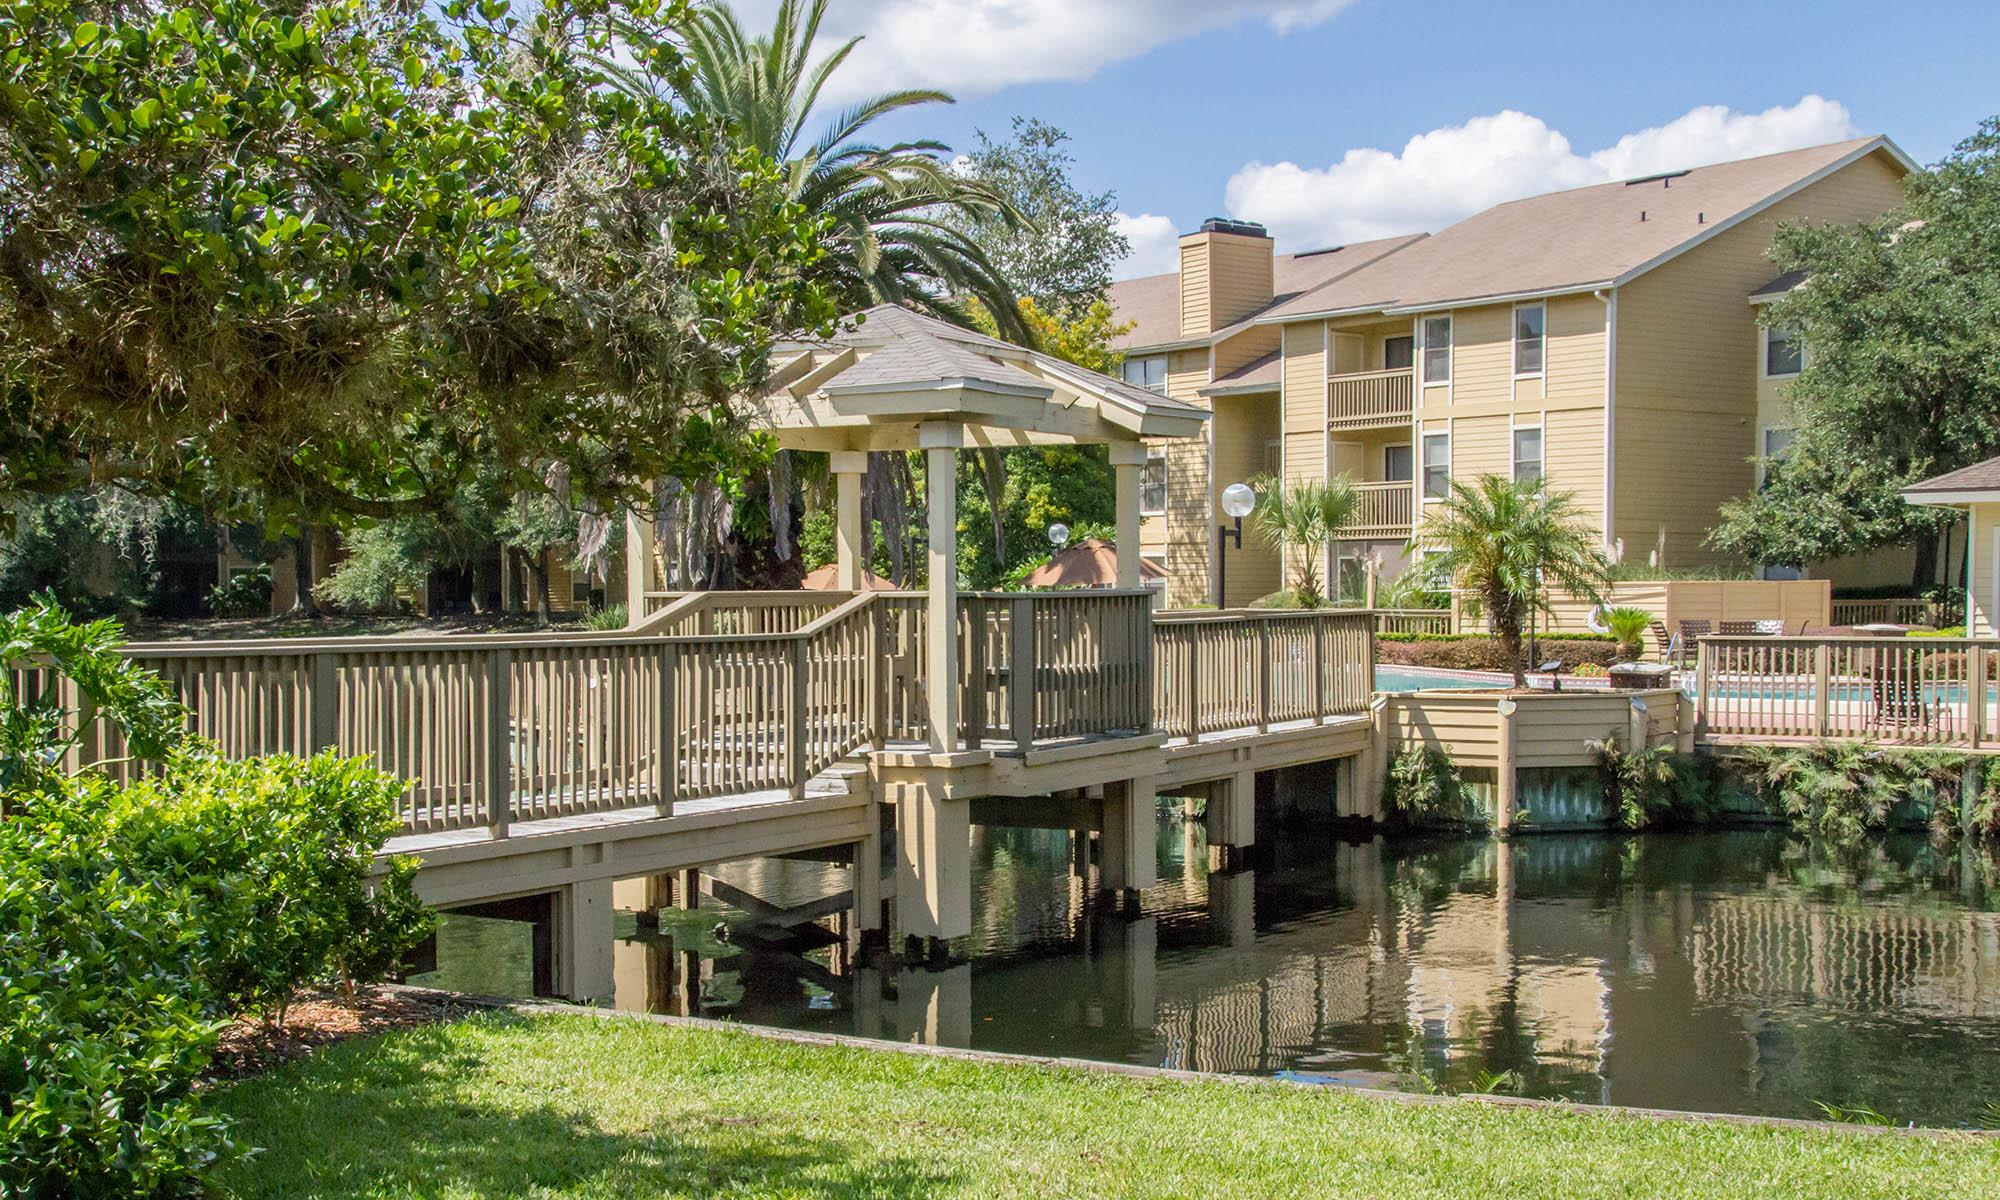 Photos of our apartments in Orange Park